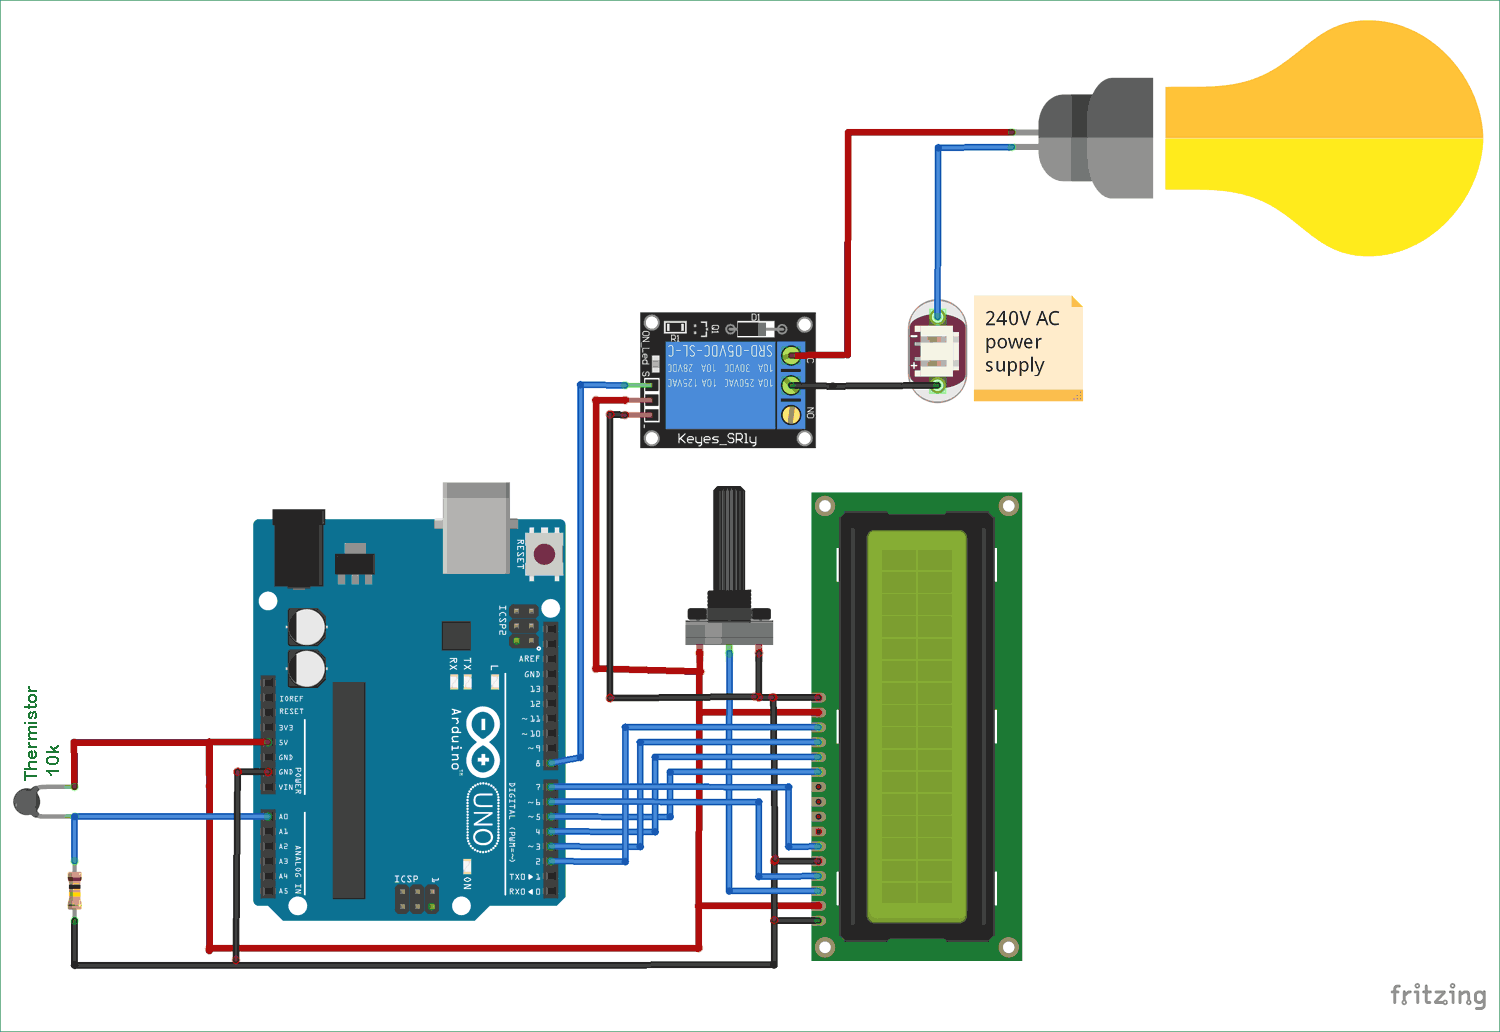 Temperature Controlled Ac Home Appliances Using Arduino And Thermistor Rf Remote Control Relay Switch Circuit Diagram Based On